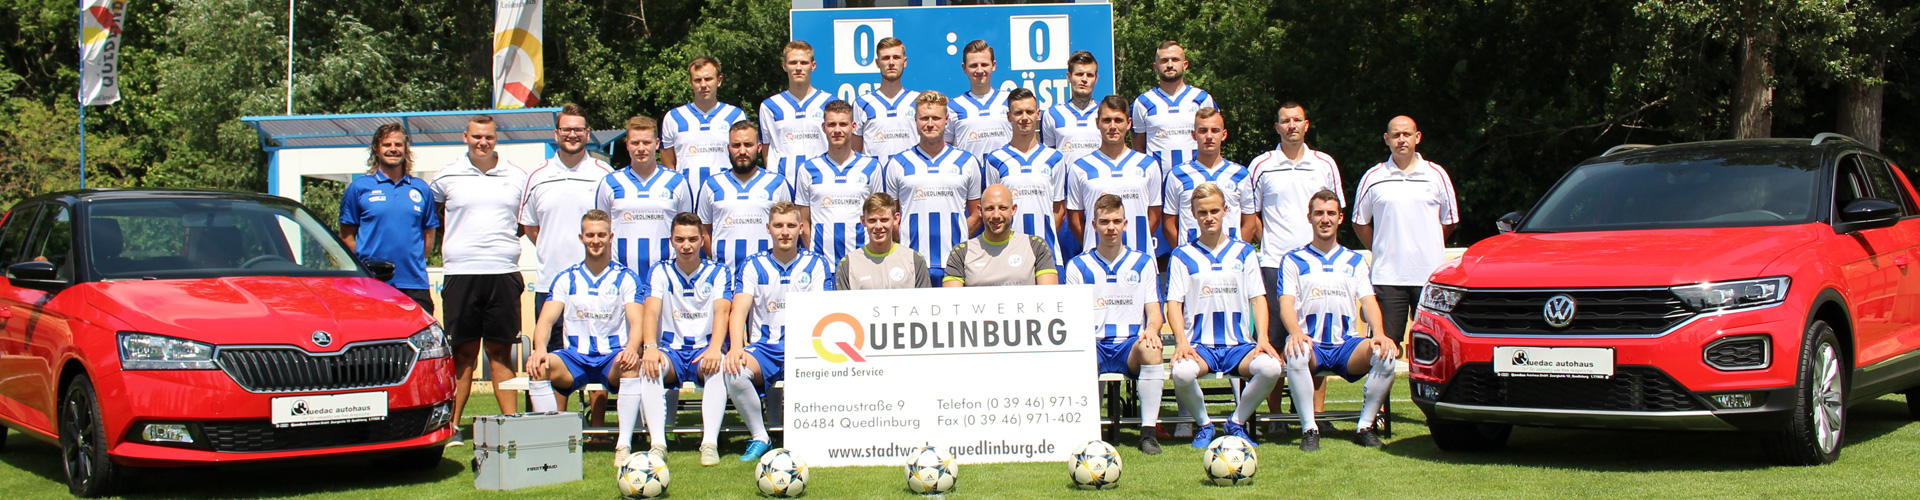 qsv-fussball-slider-20